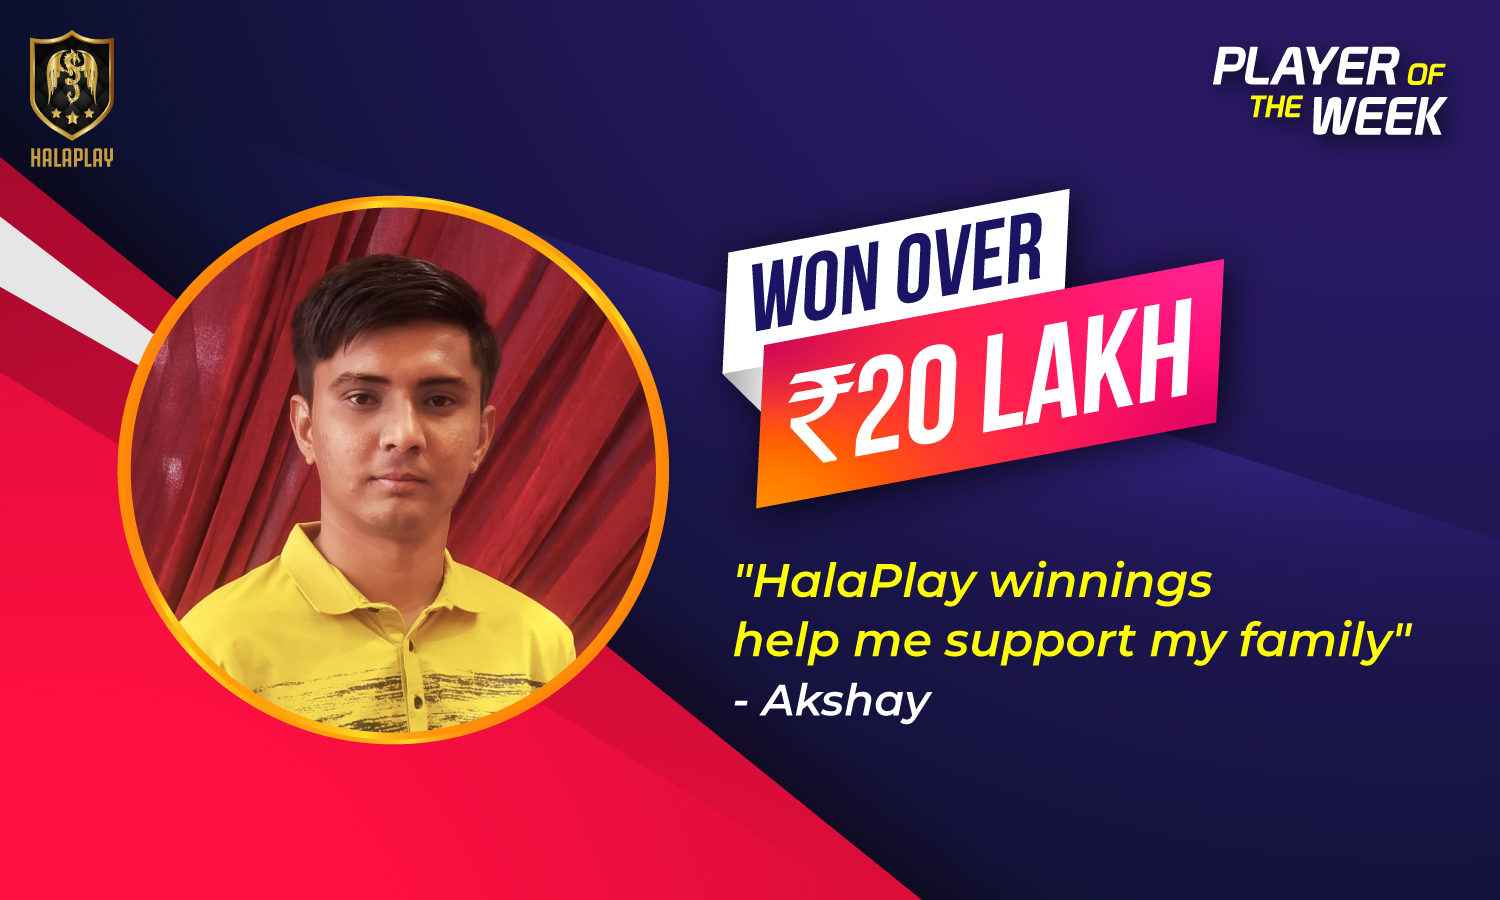 HalaPlay fantasy sports player Akshay Patel